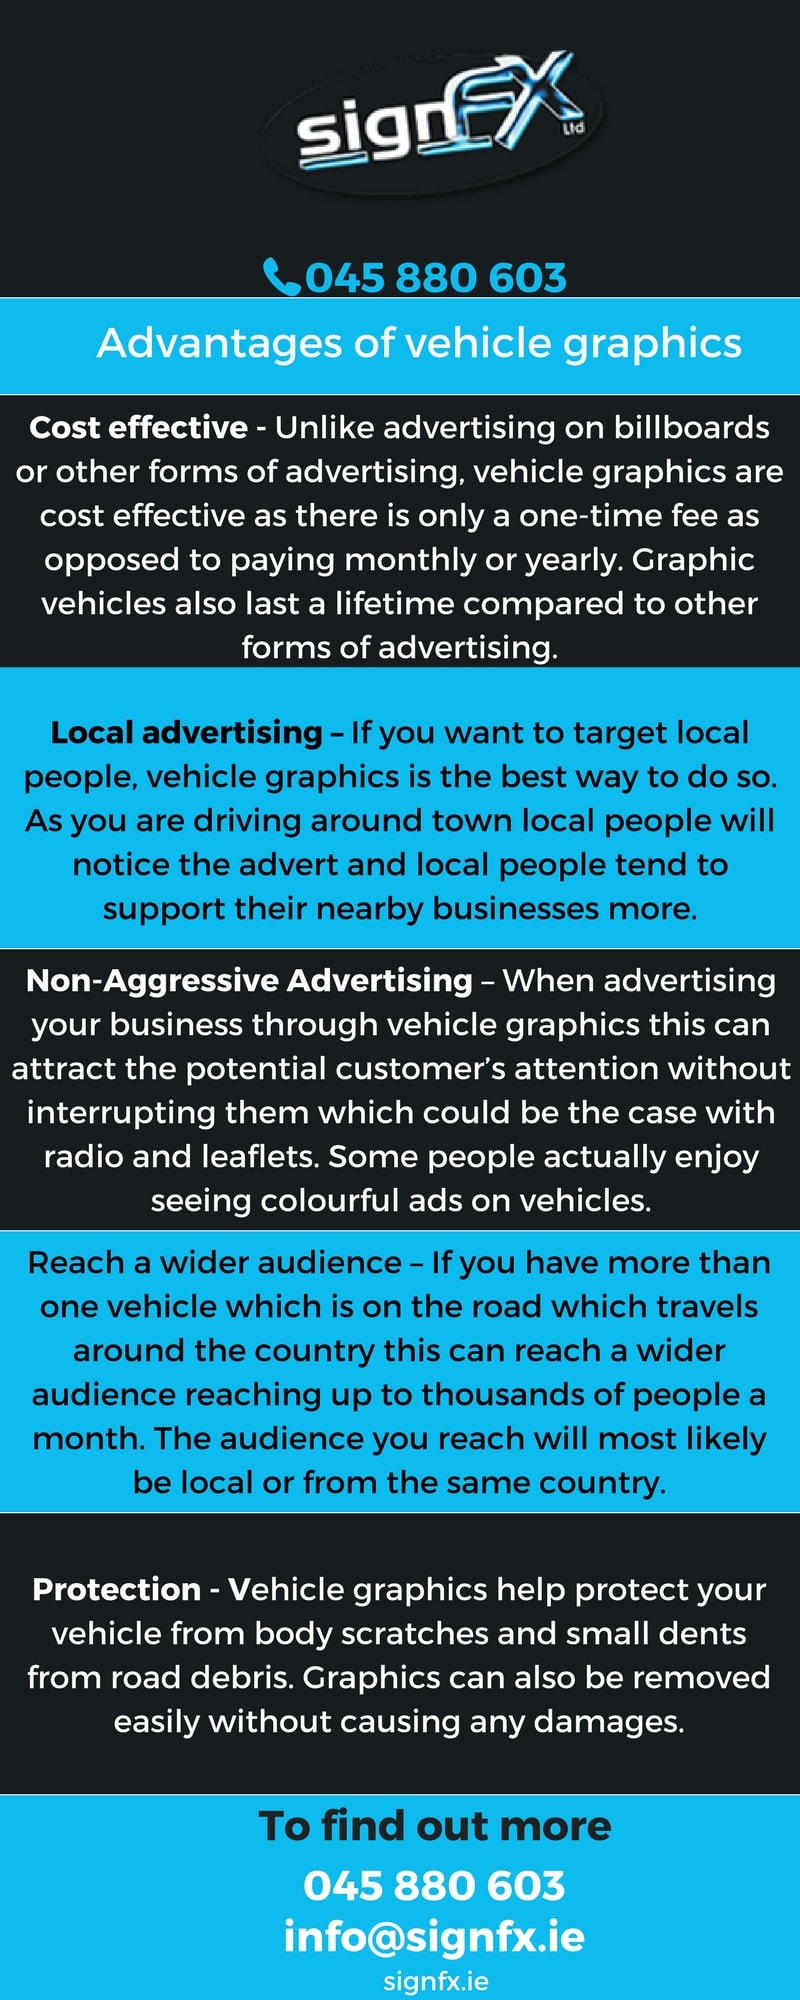 Advantages of vehicle graphics